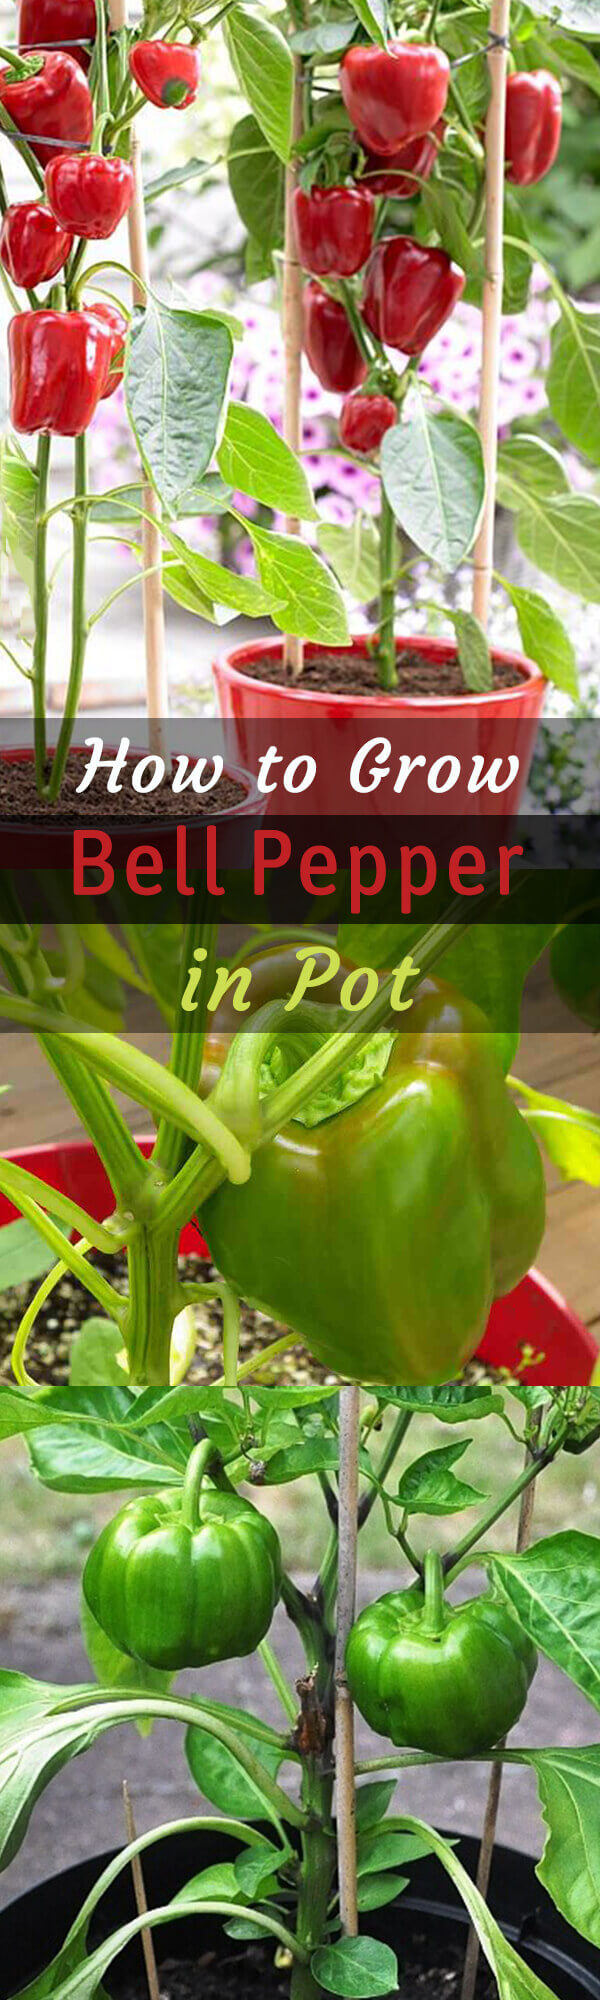 The Simplest Ways to Make the Best of Bell Pepper Plants